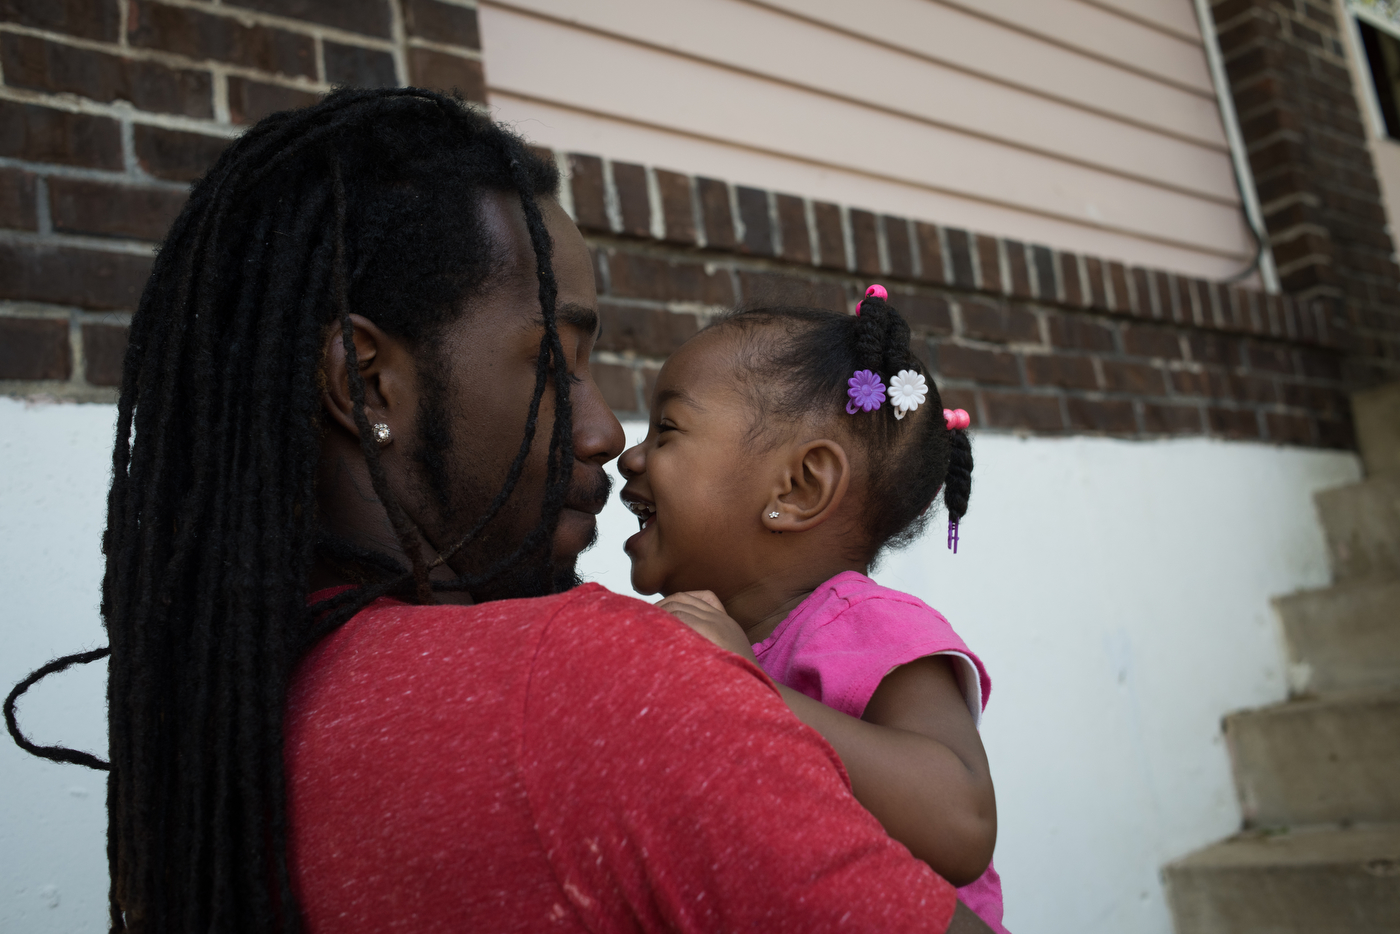 """Raymond """"Trip"""" Williams plays with his 18-month-old daughter Rayne at his grandmother's house in Ferguson, Mo. Trip, who is separated from Rayne's mother, recently secured a job in an effort to provide for his daughter better, motivated by seeing some of his friends grow up without both parents around."""